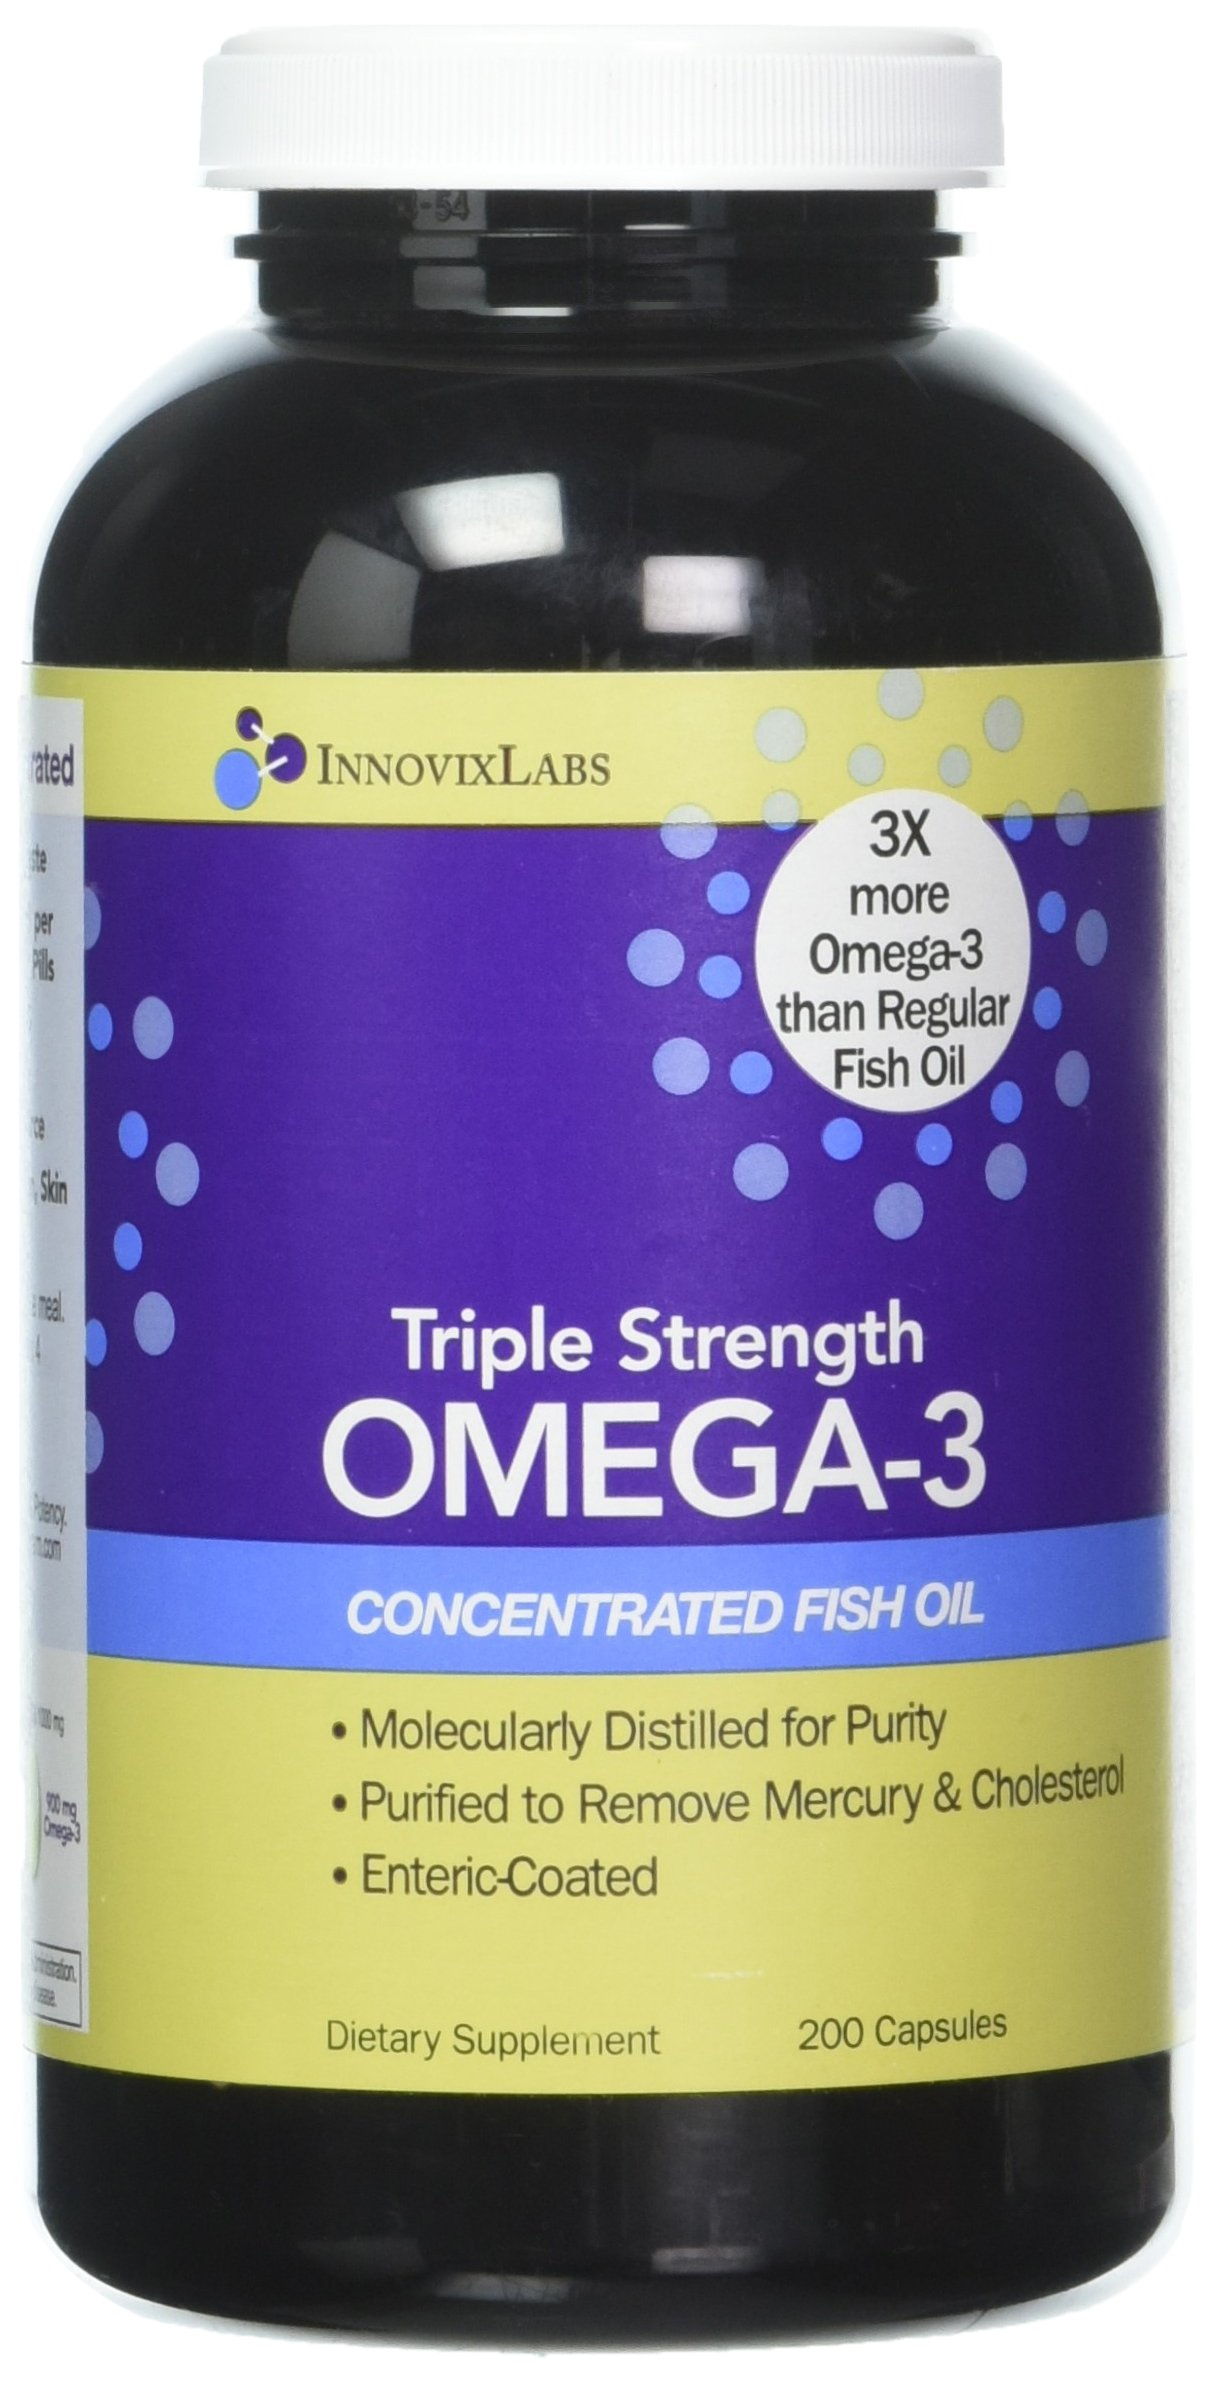 Triple Strength OMEGA-3 (by InnovixLabs). Concentrated Fish Oil, 900 mg Omega-3 per Pill. Enteric Coated, Odorless & Burp-Free. (200)